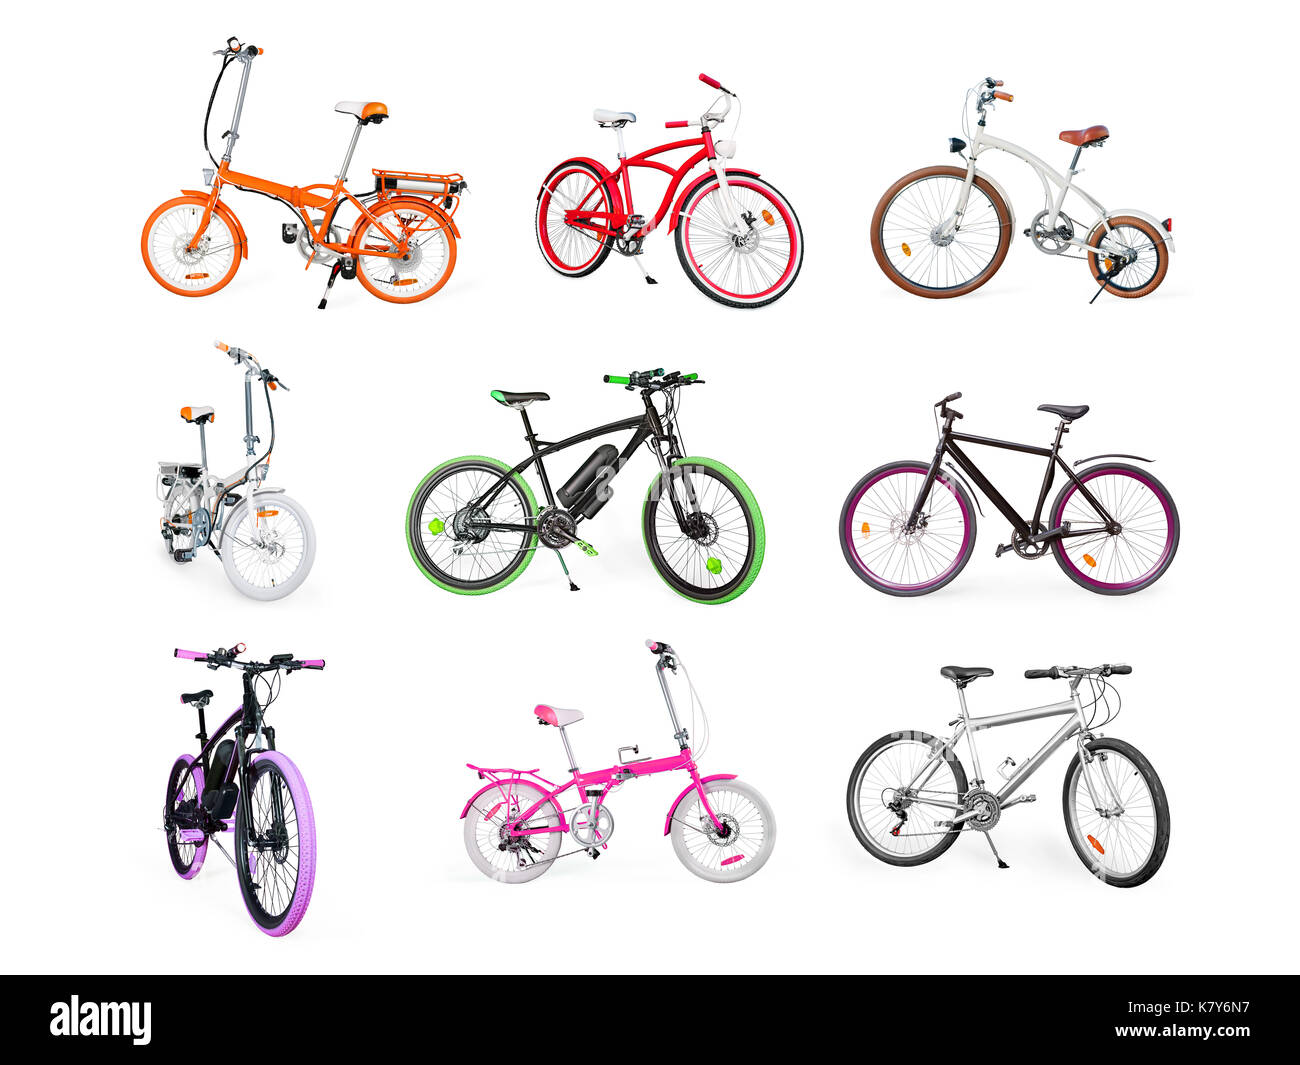 Different bikes collection. Set of electric, urban, cruiser, MTB and folding bikes isolated on white - Stock Image